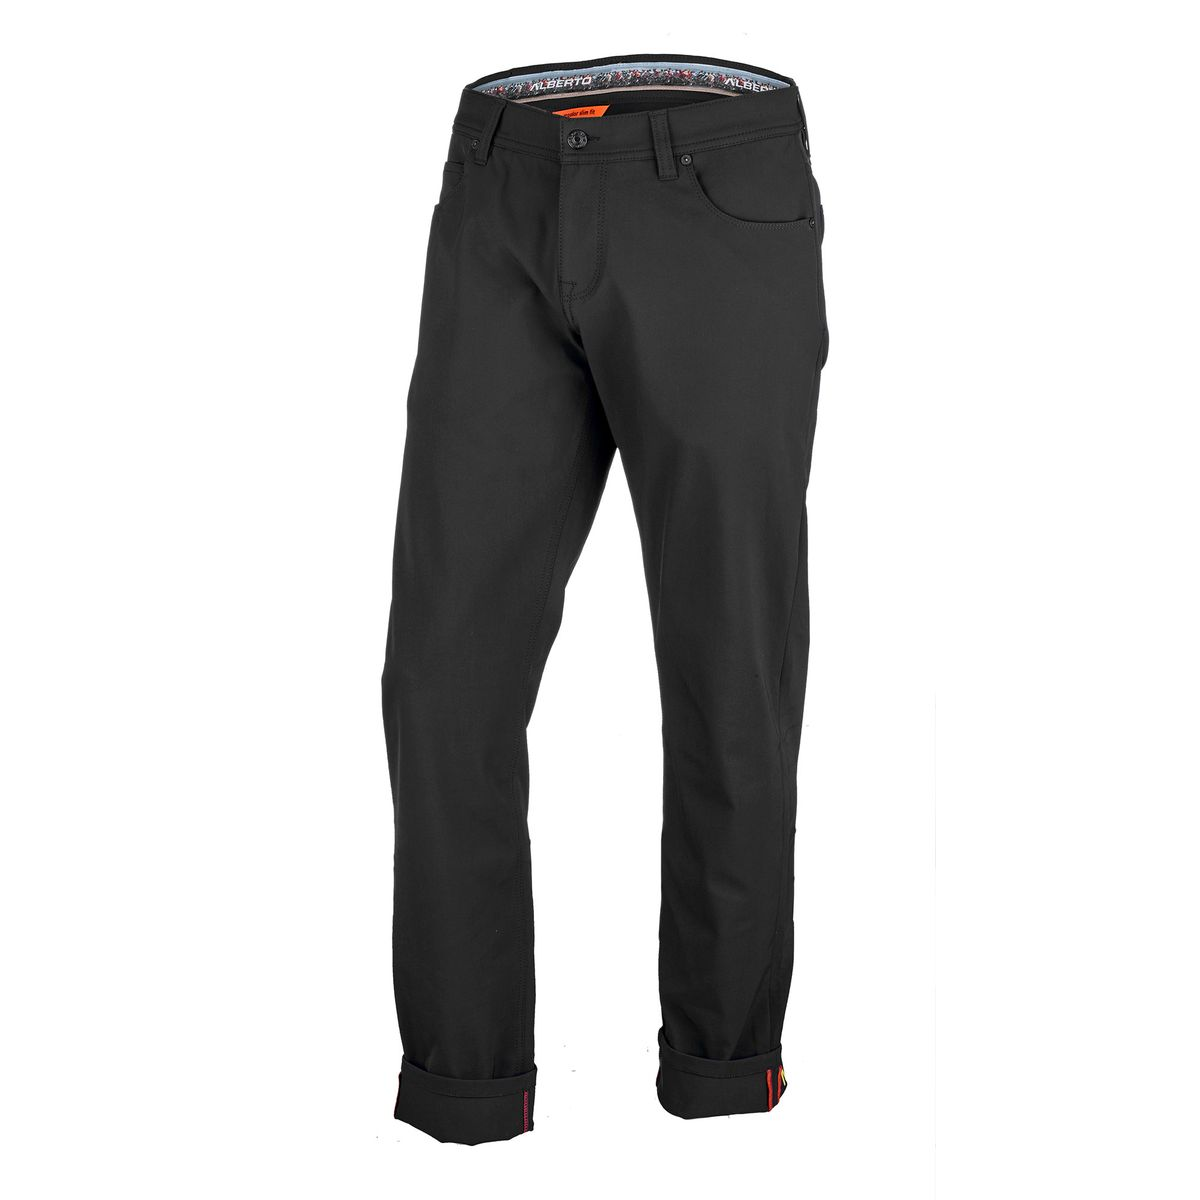 3XDRY COOLER trousers